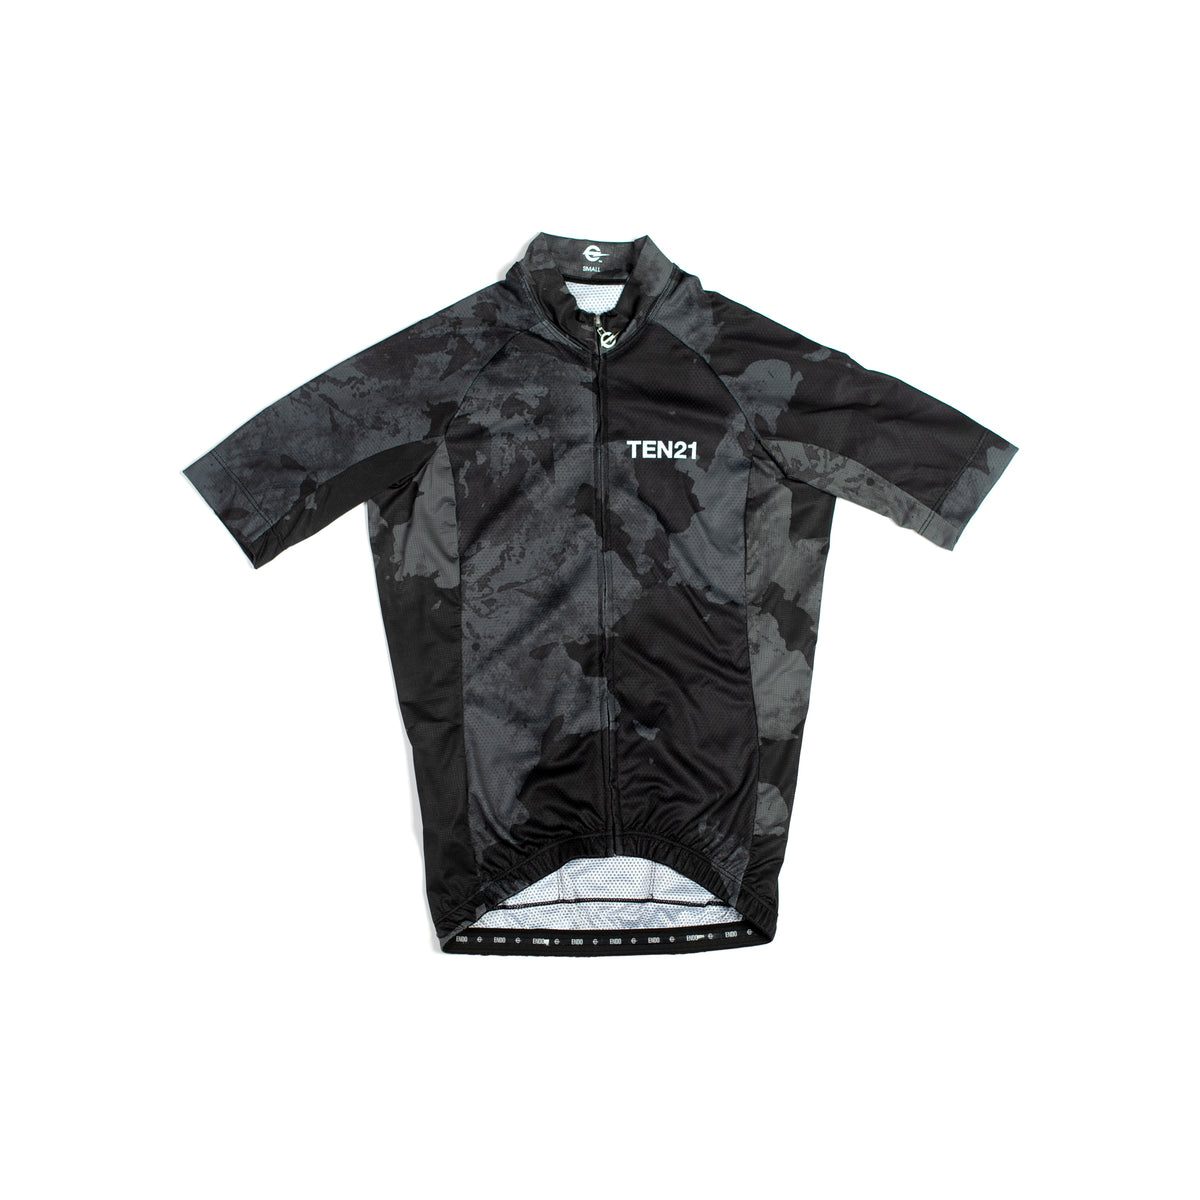 TEN21 - ALAMEDA JERSEY - DARK CONCRETE